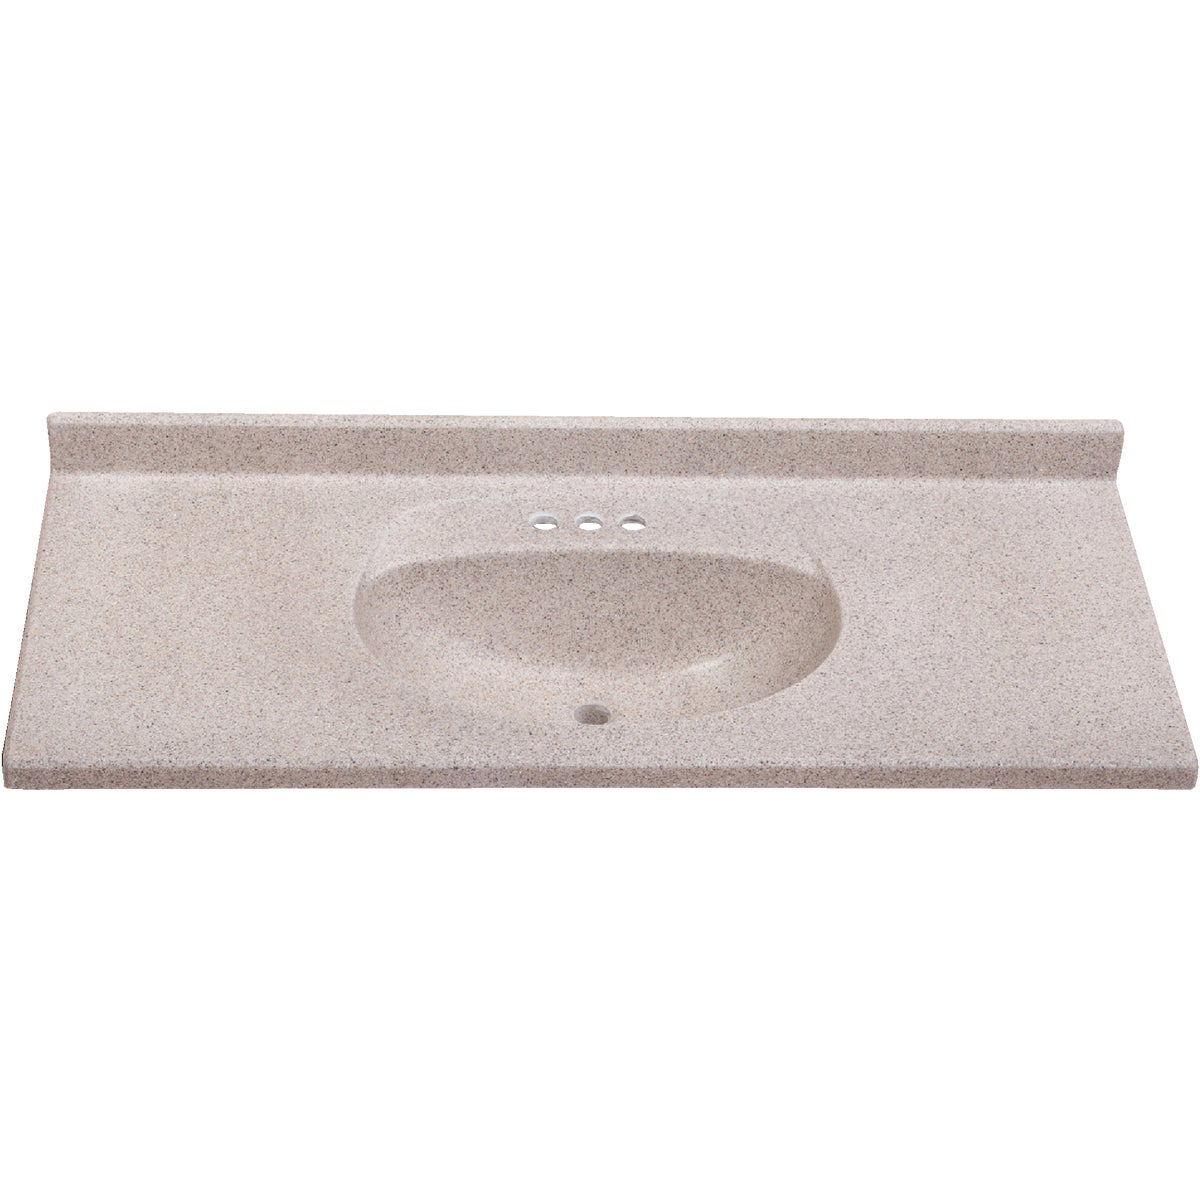 49X22 CAP OLY VANITY TOP - VB4922CAPSS by Imperial Marble Corp